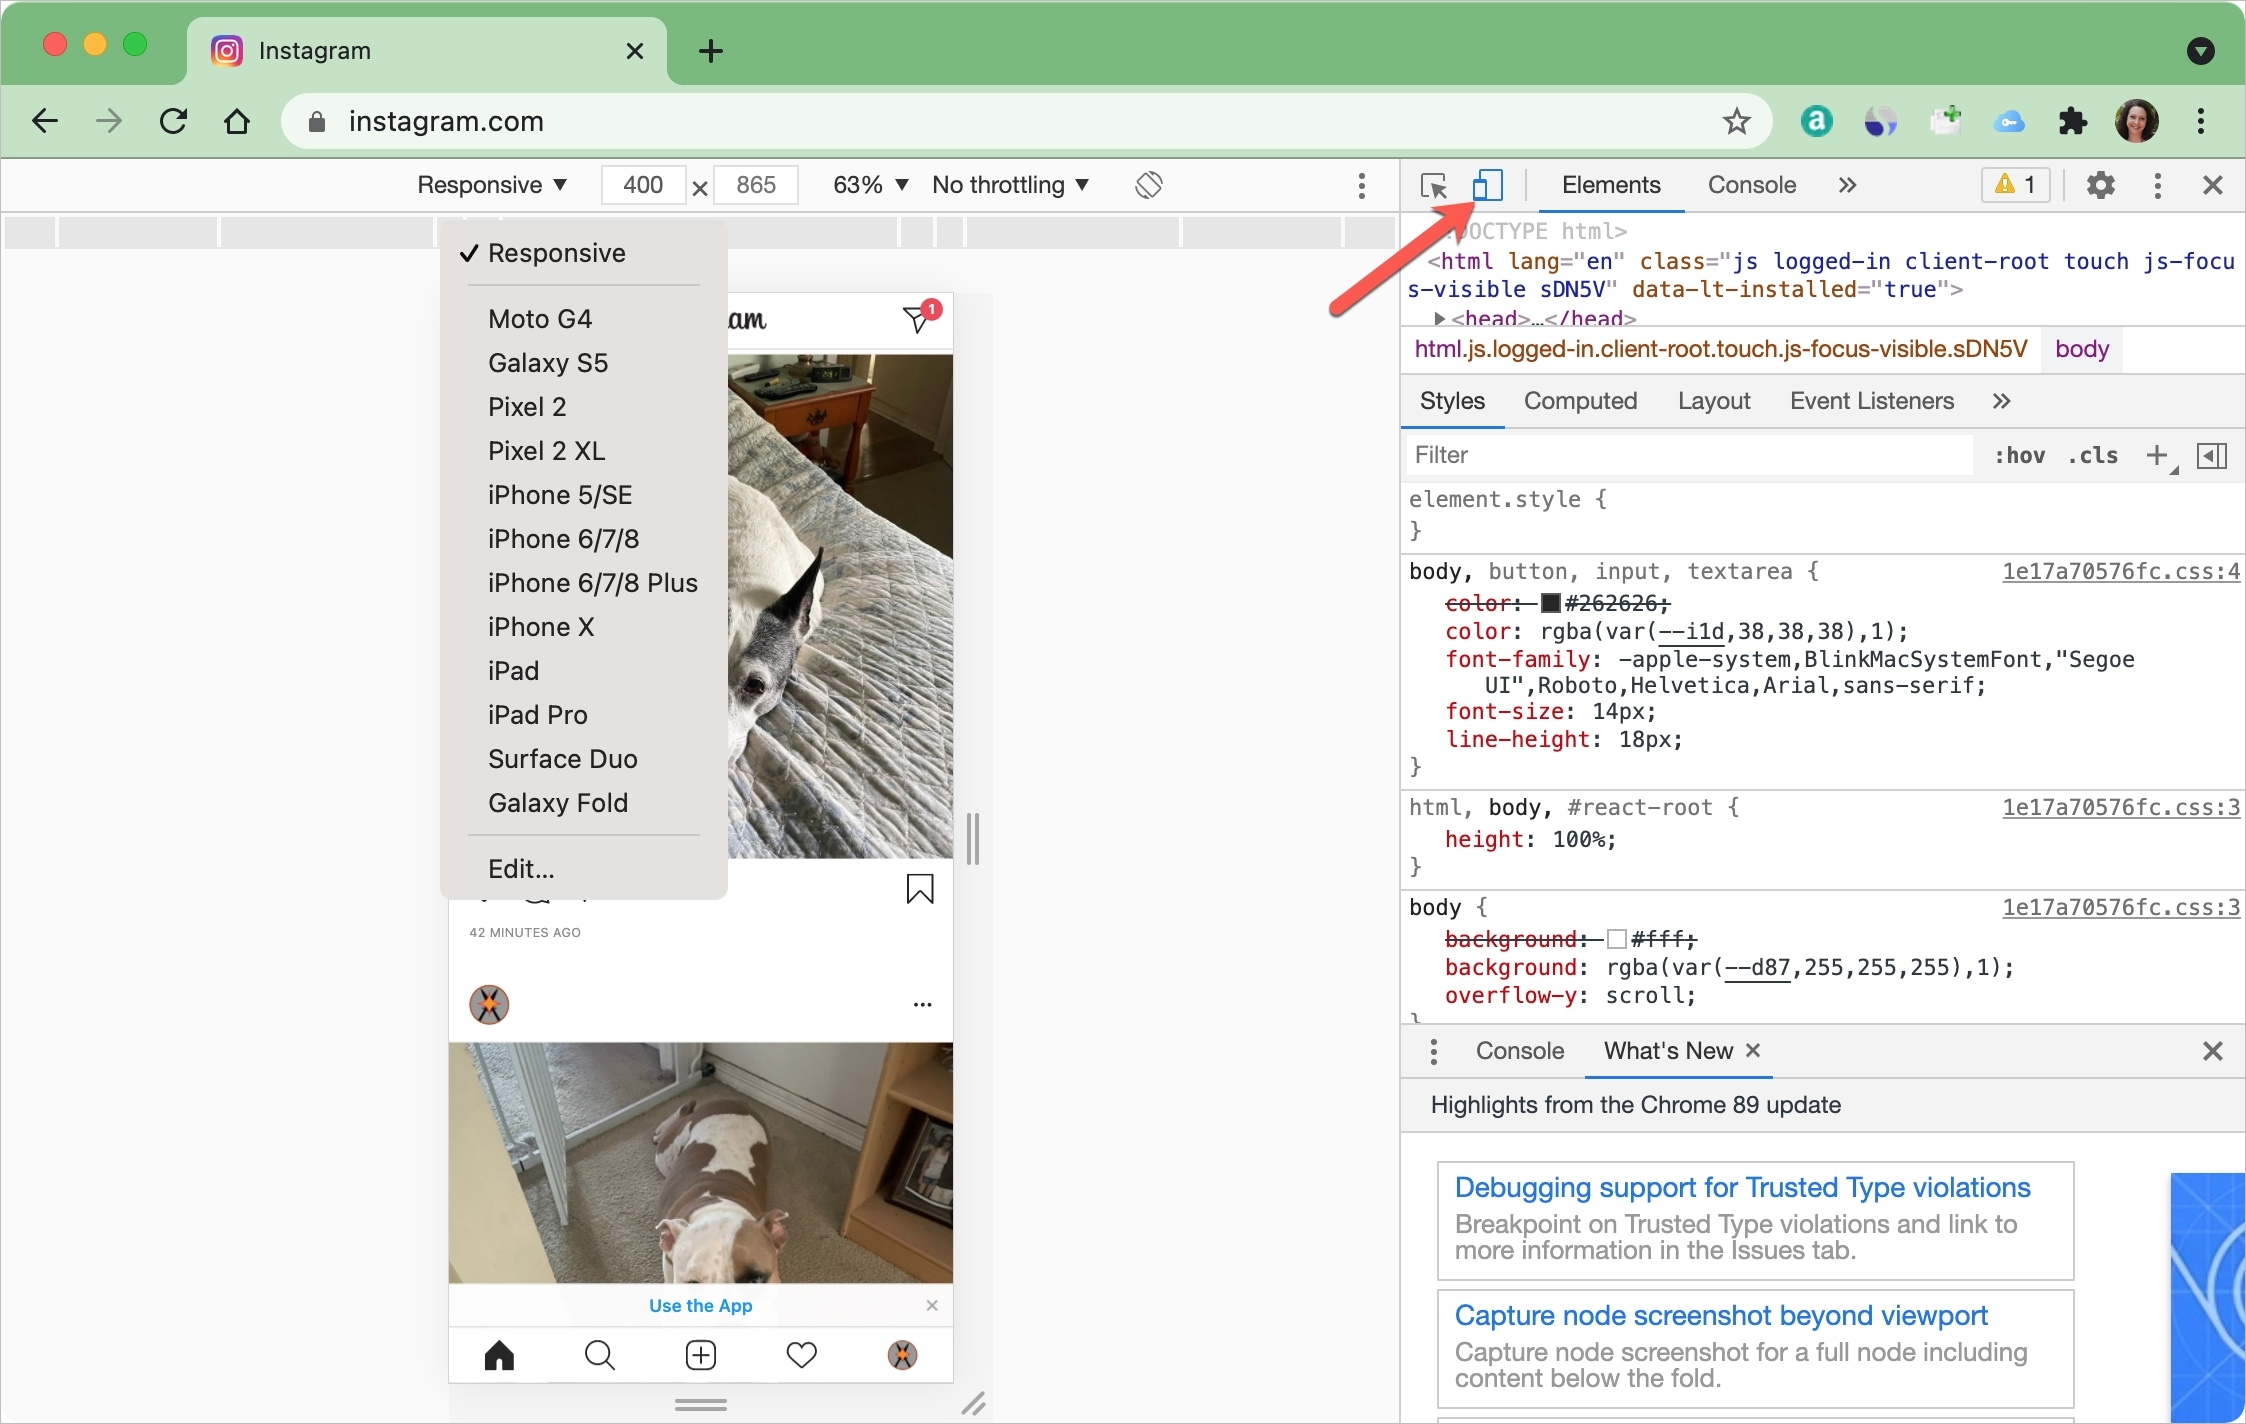 Instagram Post from Chrome on Mac